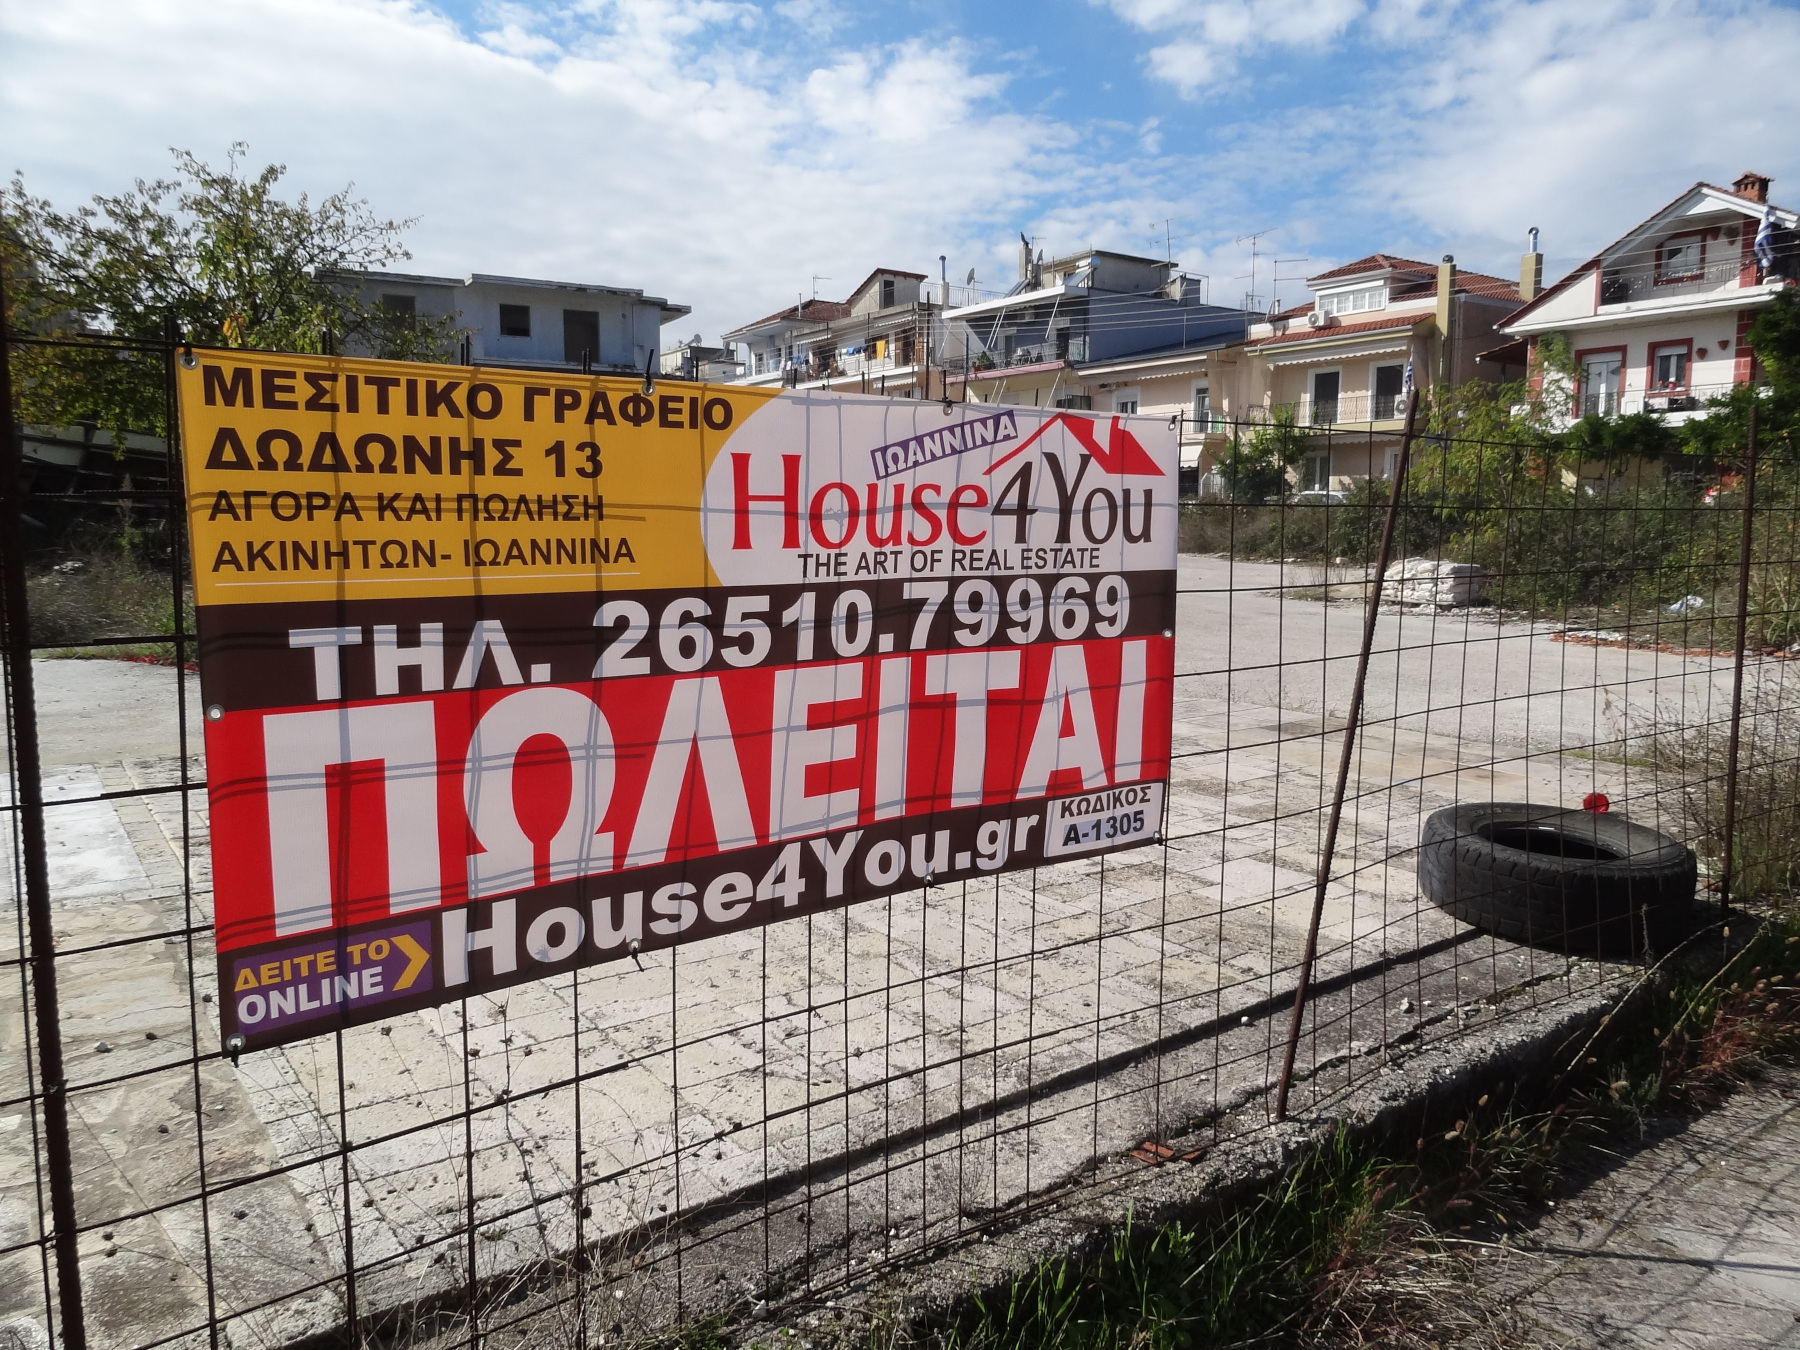 For sale a plot of 1,600 sq.m. with S.D. 0.8 and face to three streets in a privileged spot in the area of Anatoli Ioannina on 3rd of September Street